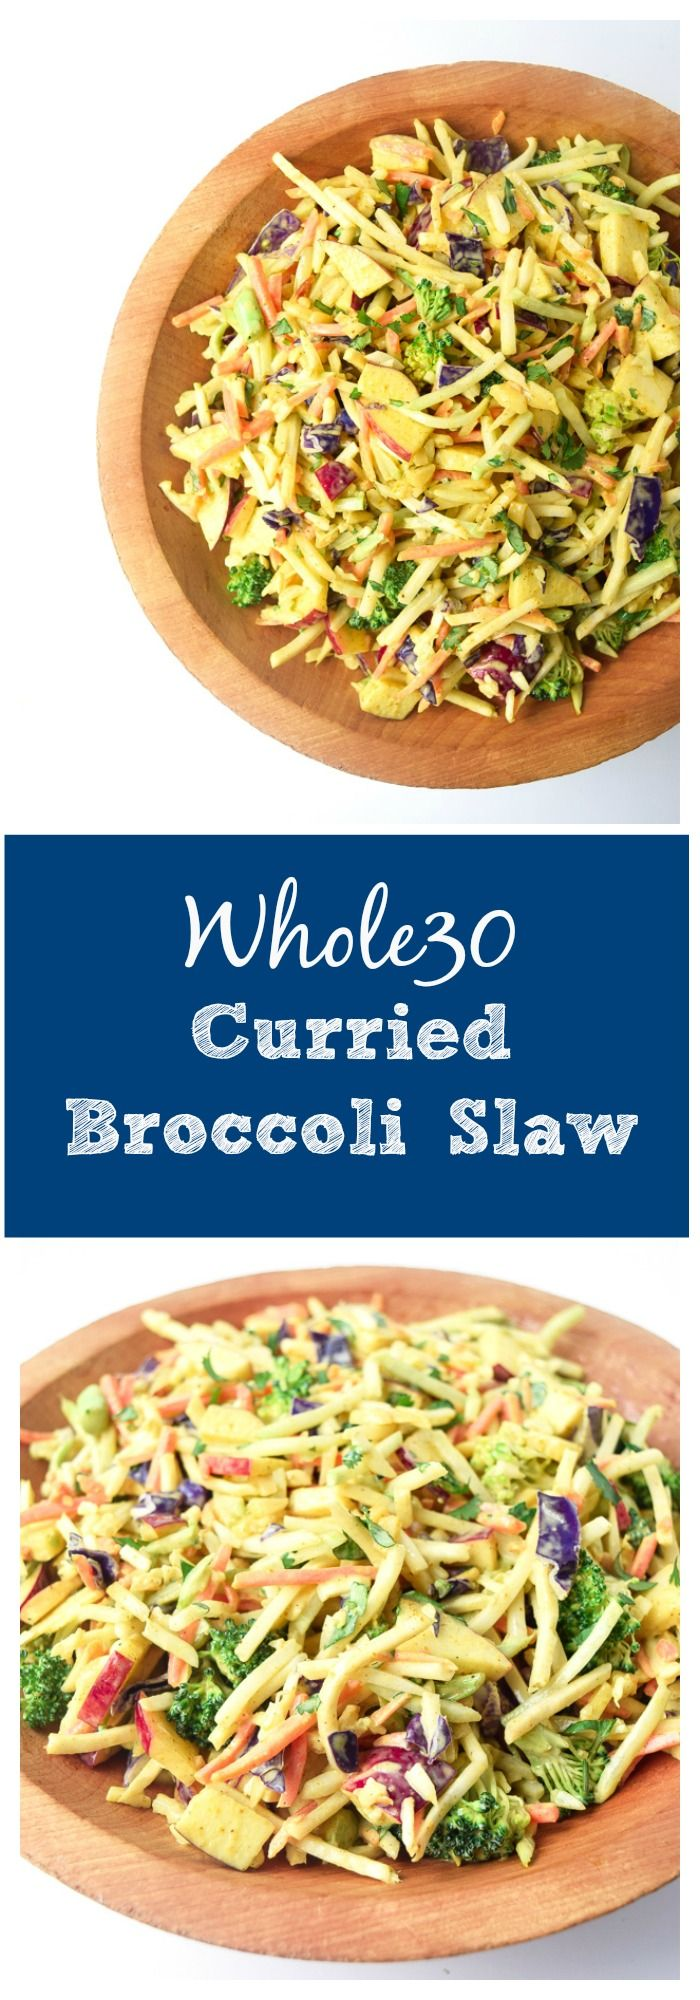 Whole30 Curried Broccoli Slaw Crunchy Satisfying And